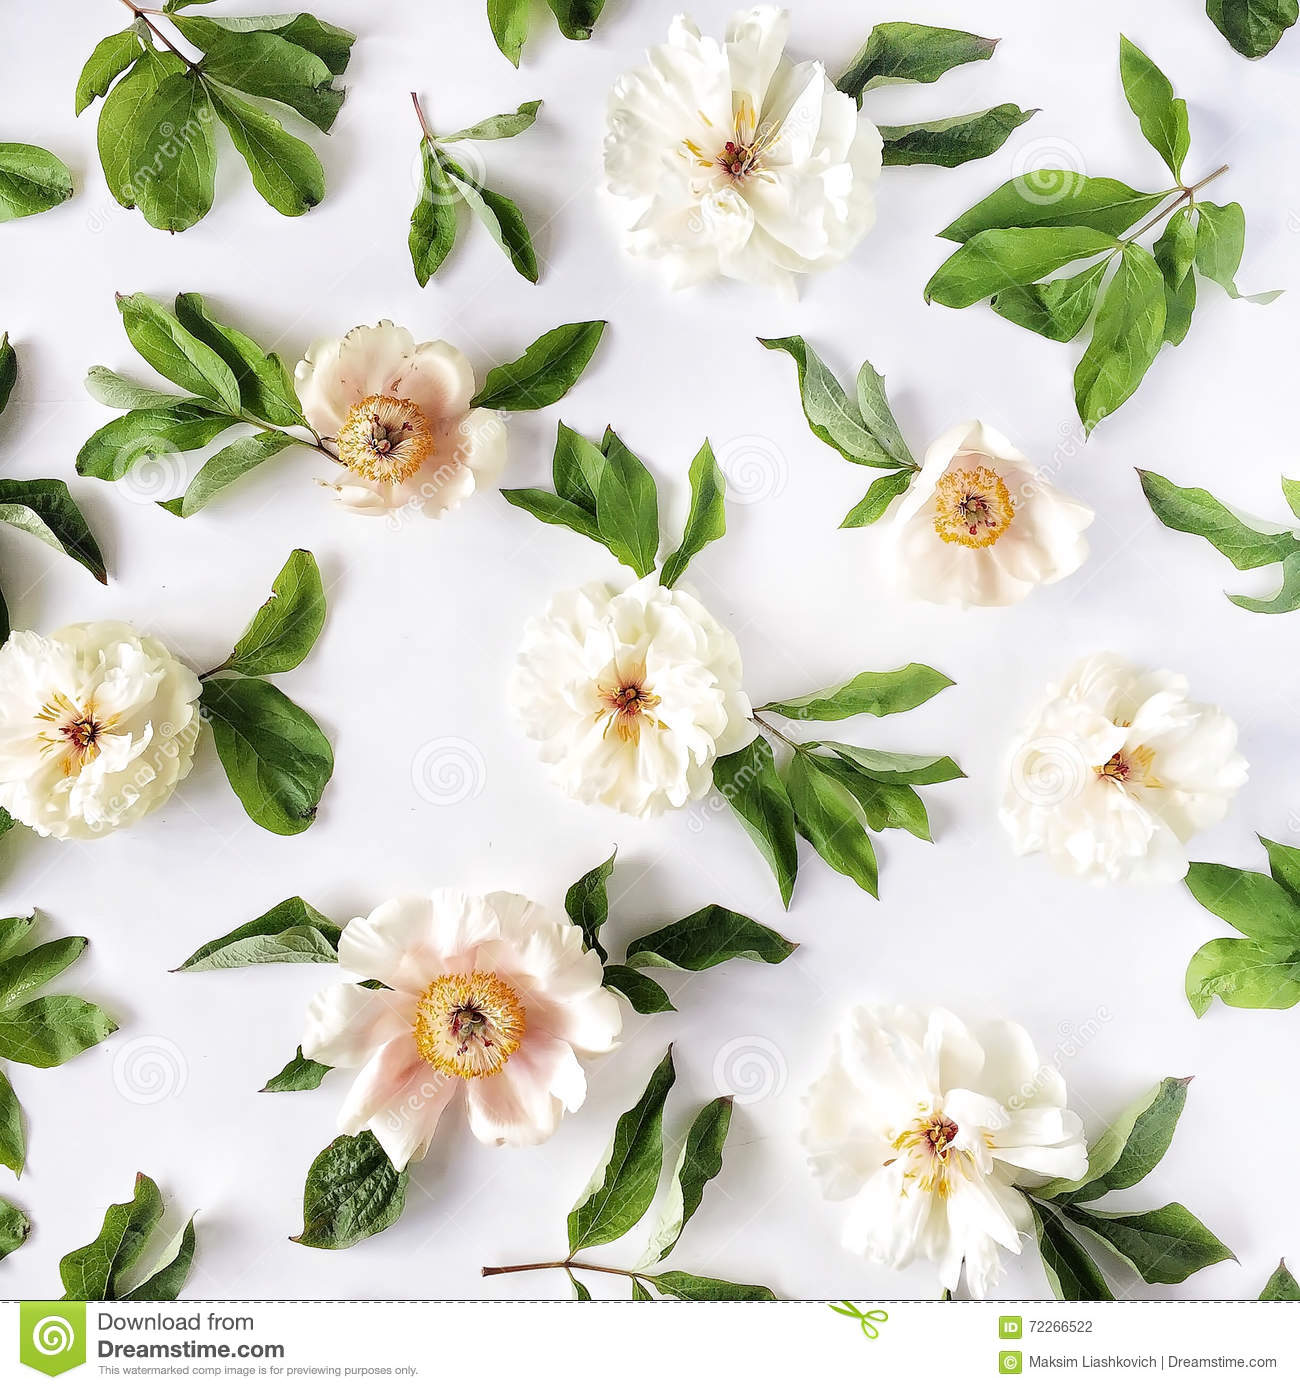 Peony flowers pattern isolated on white background